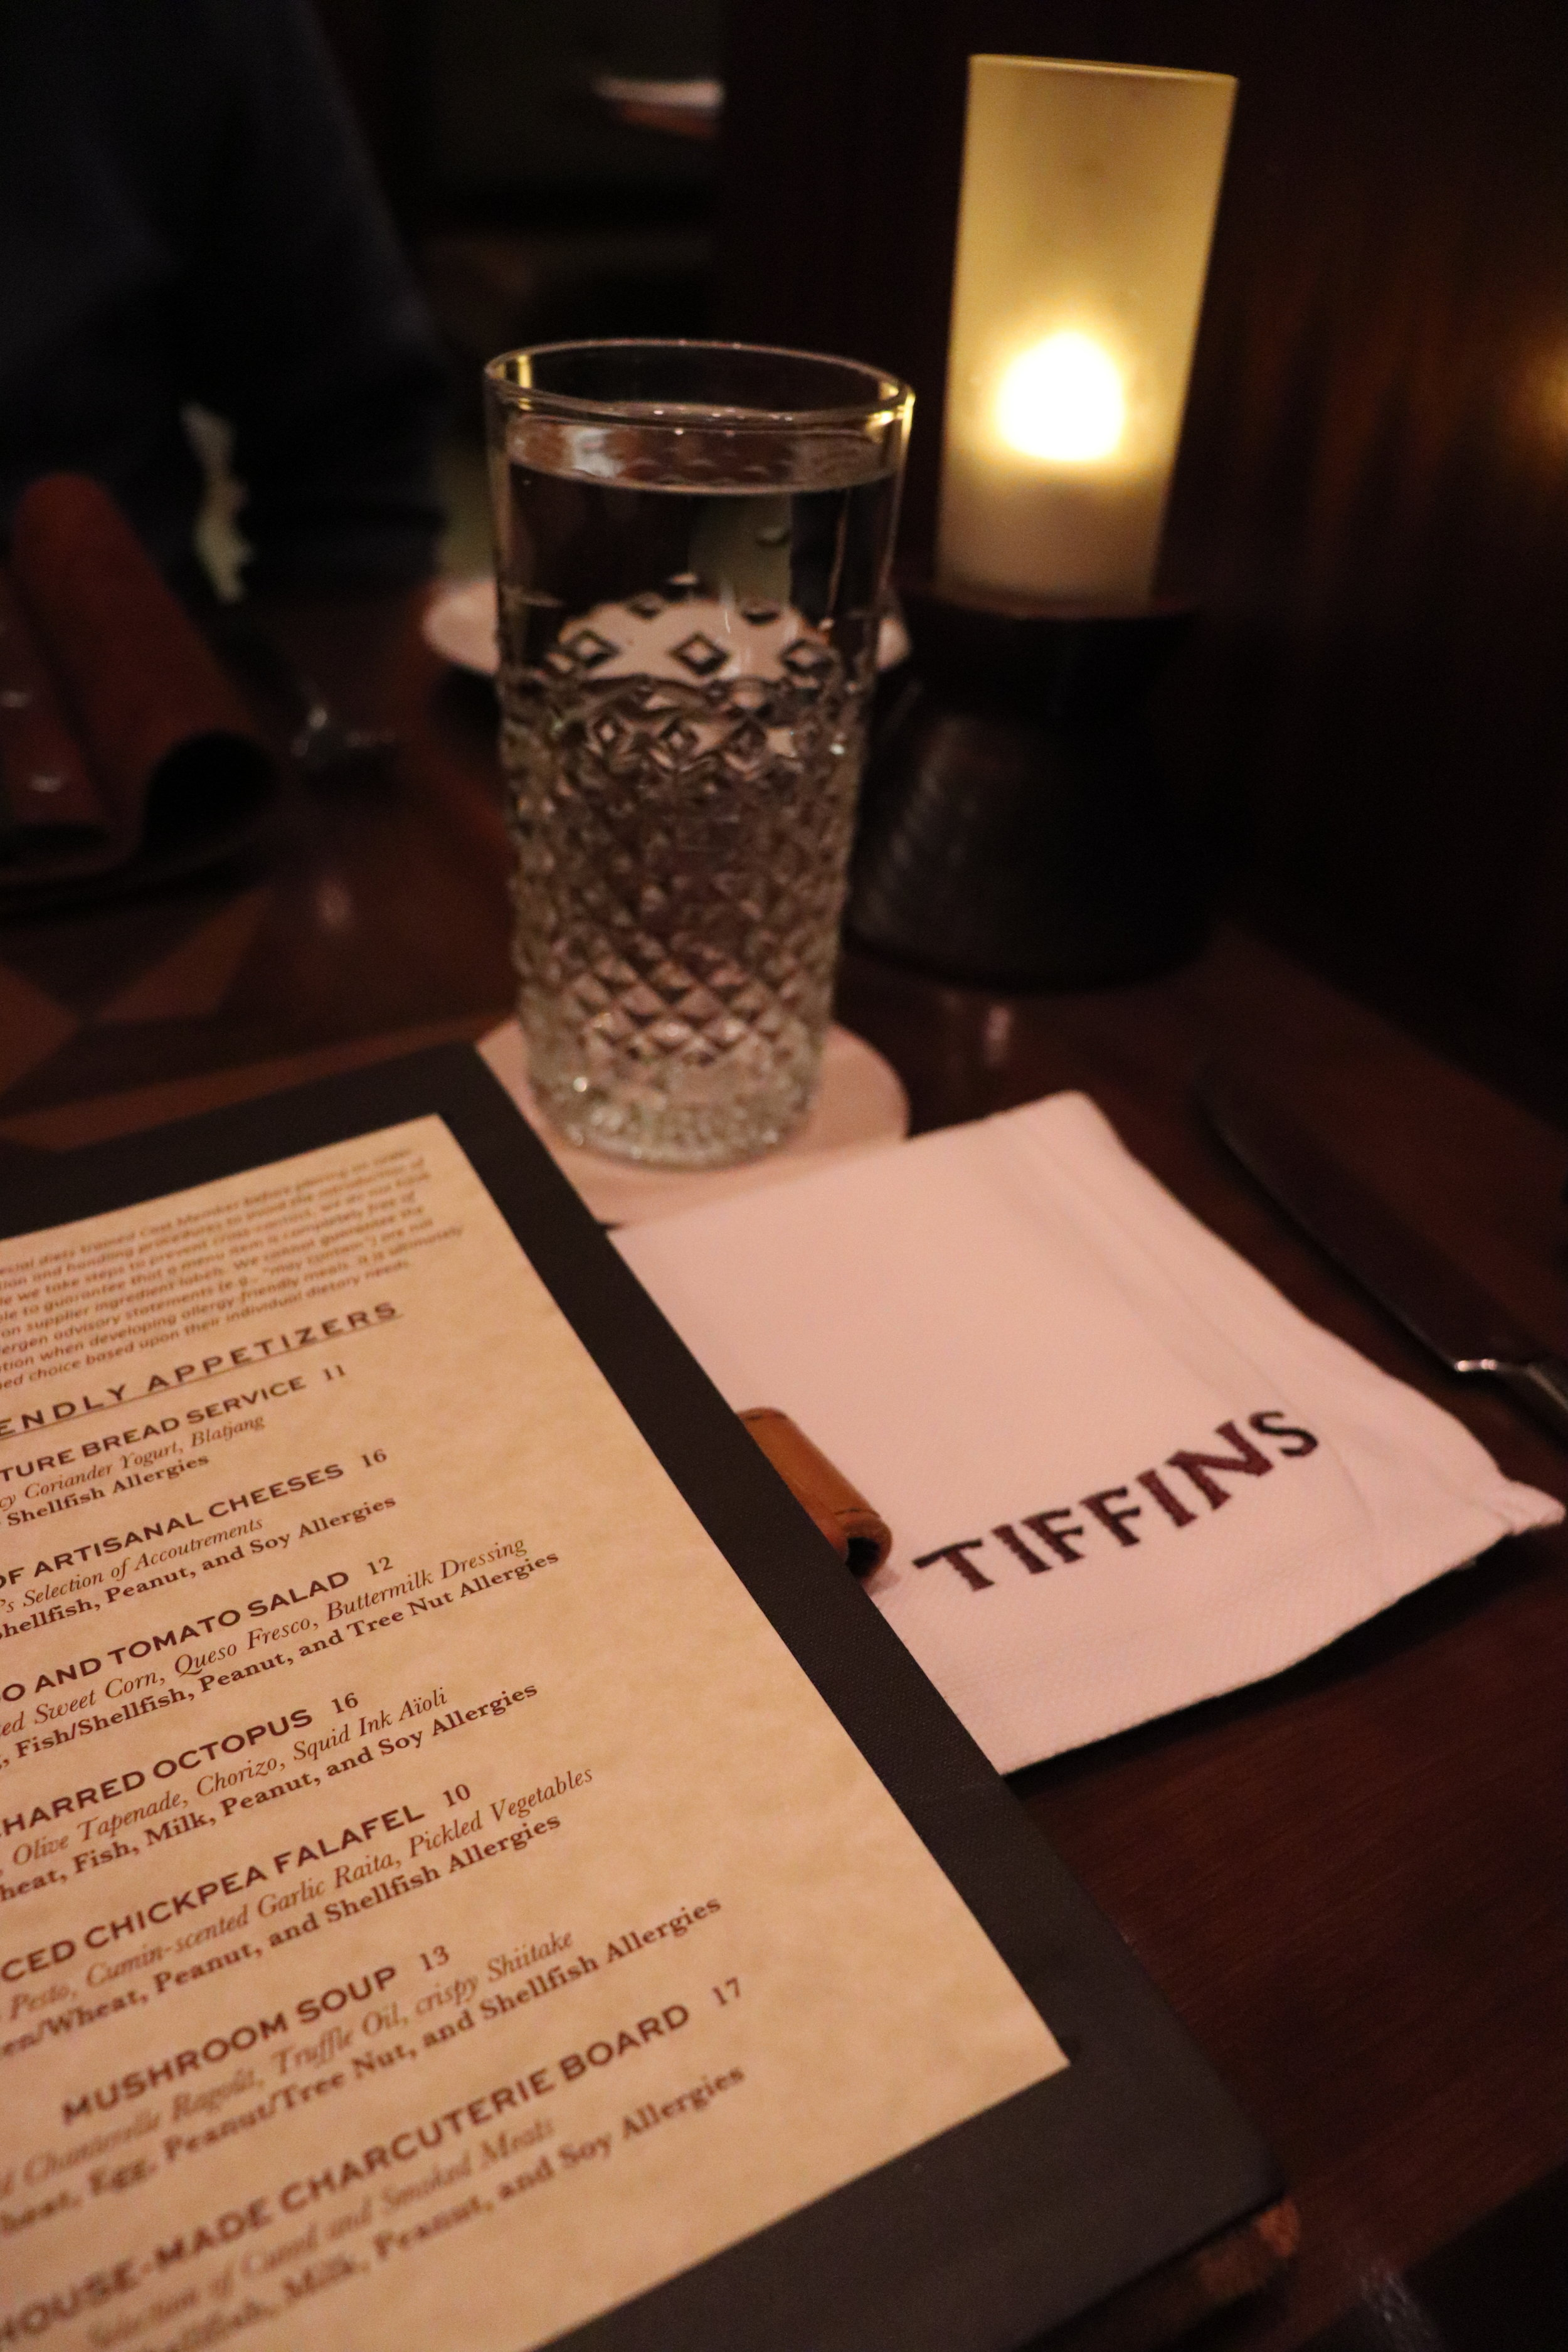 The ambiance of Tiffins is upscale and a nice escape from the parks for a bit.